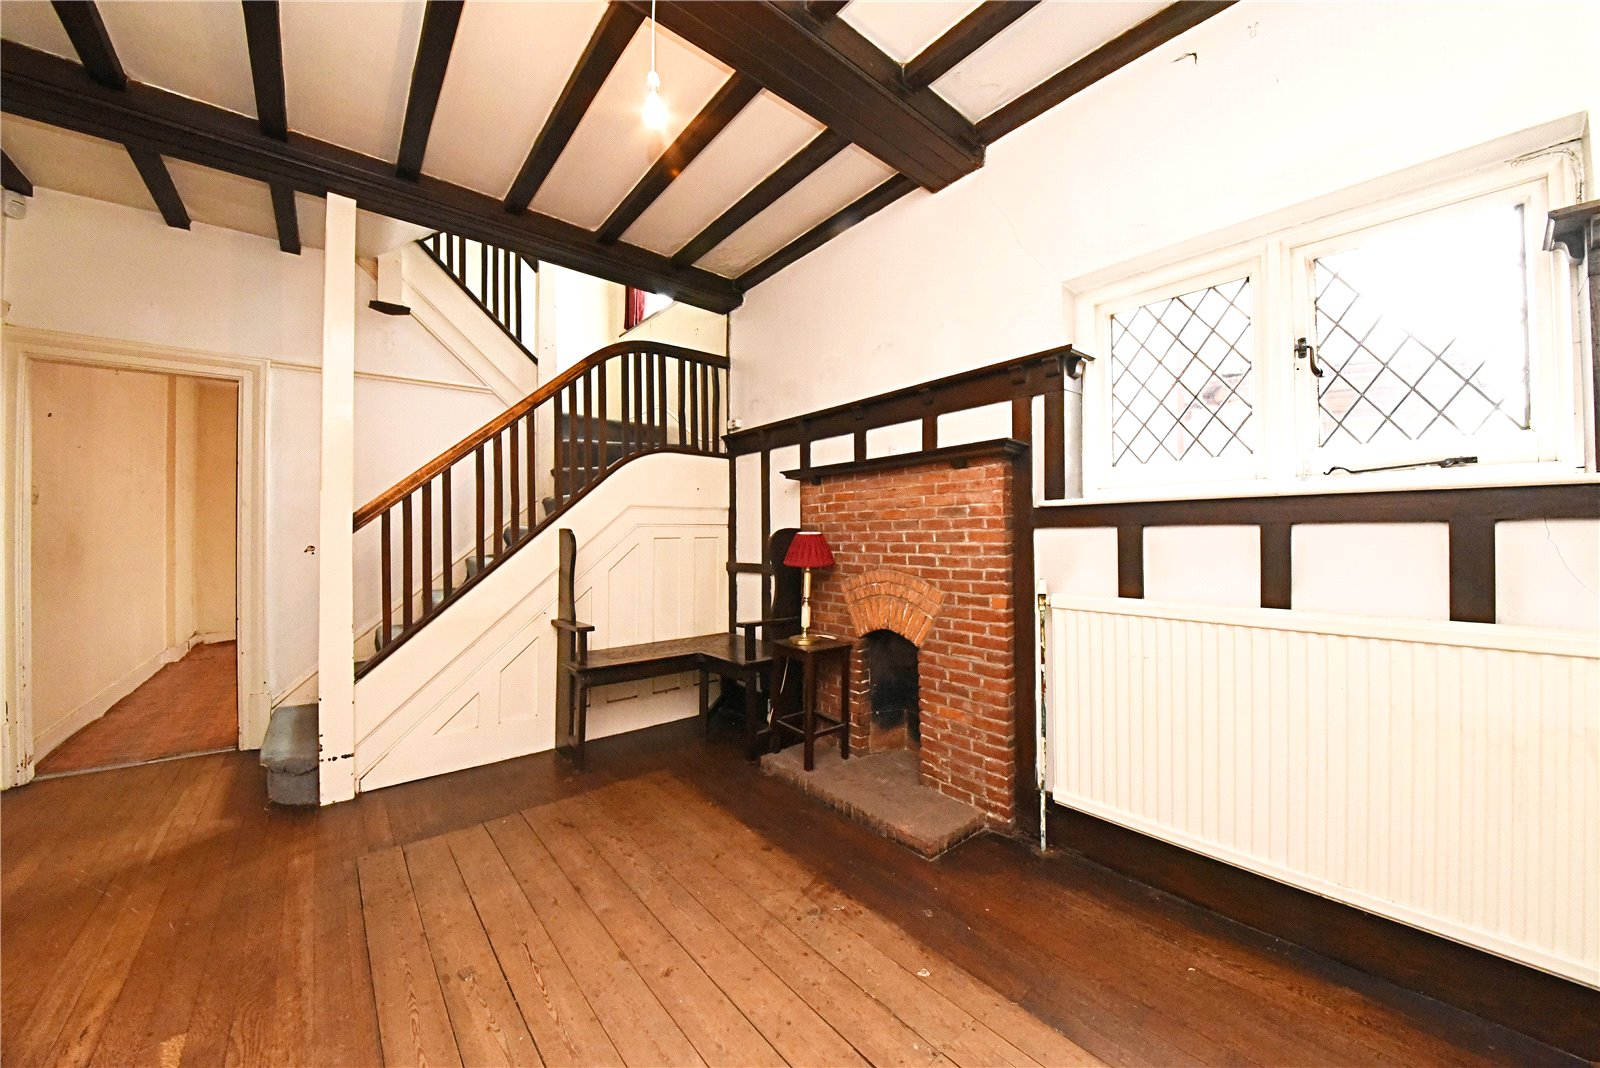 6 bed house for sale in Whetstone, N20 0NN  - Property Image 6